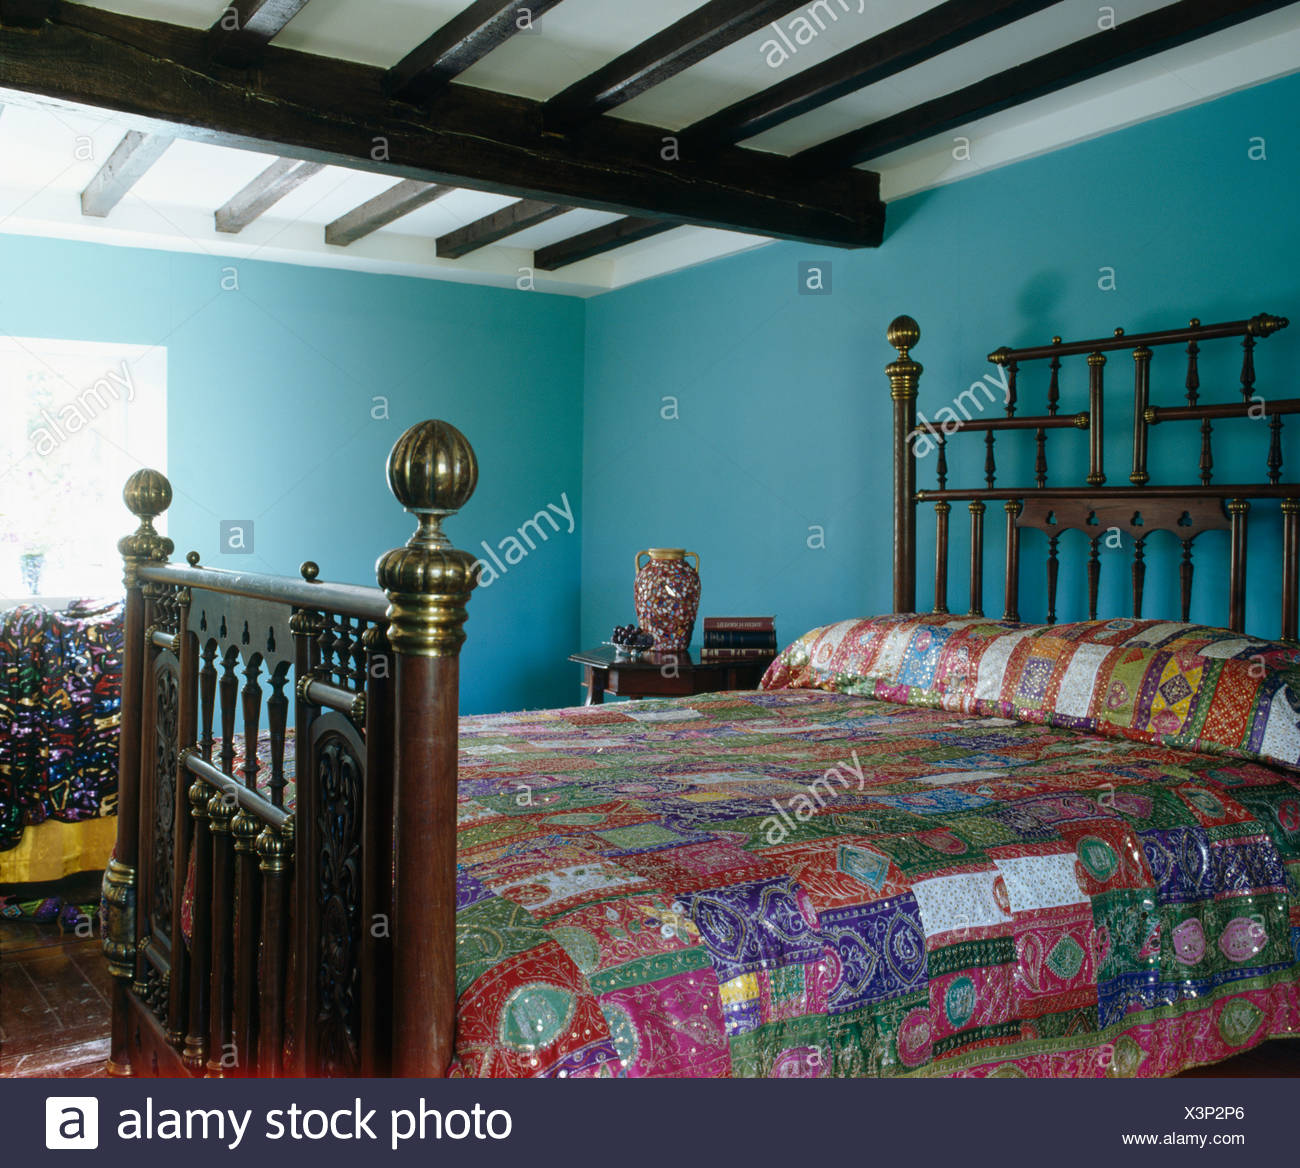 Colorful patchwork quilt on antique carved wooden bed in blue country bedroom with beamed ceiling Stock Photo